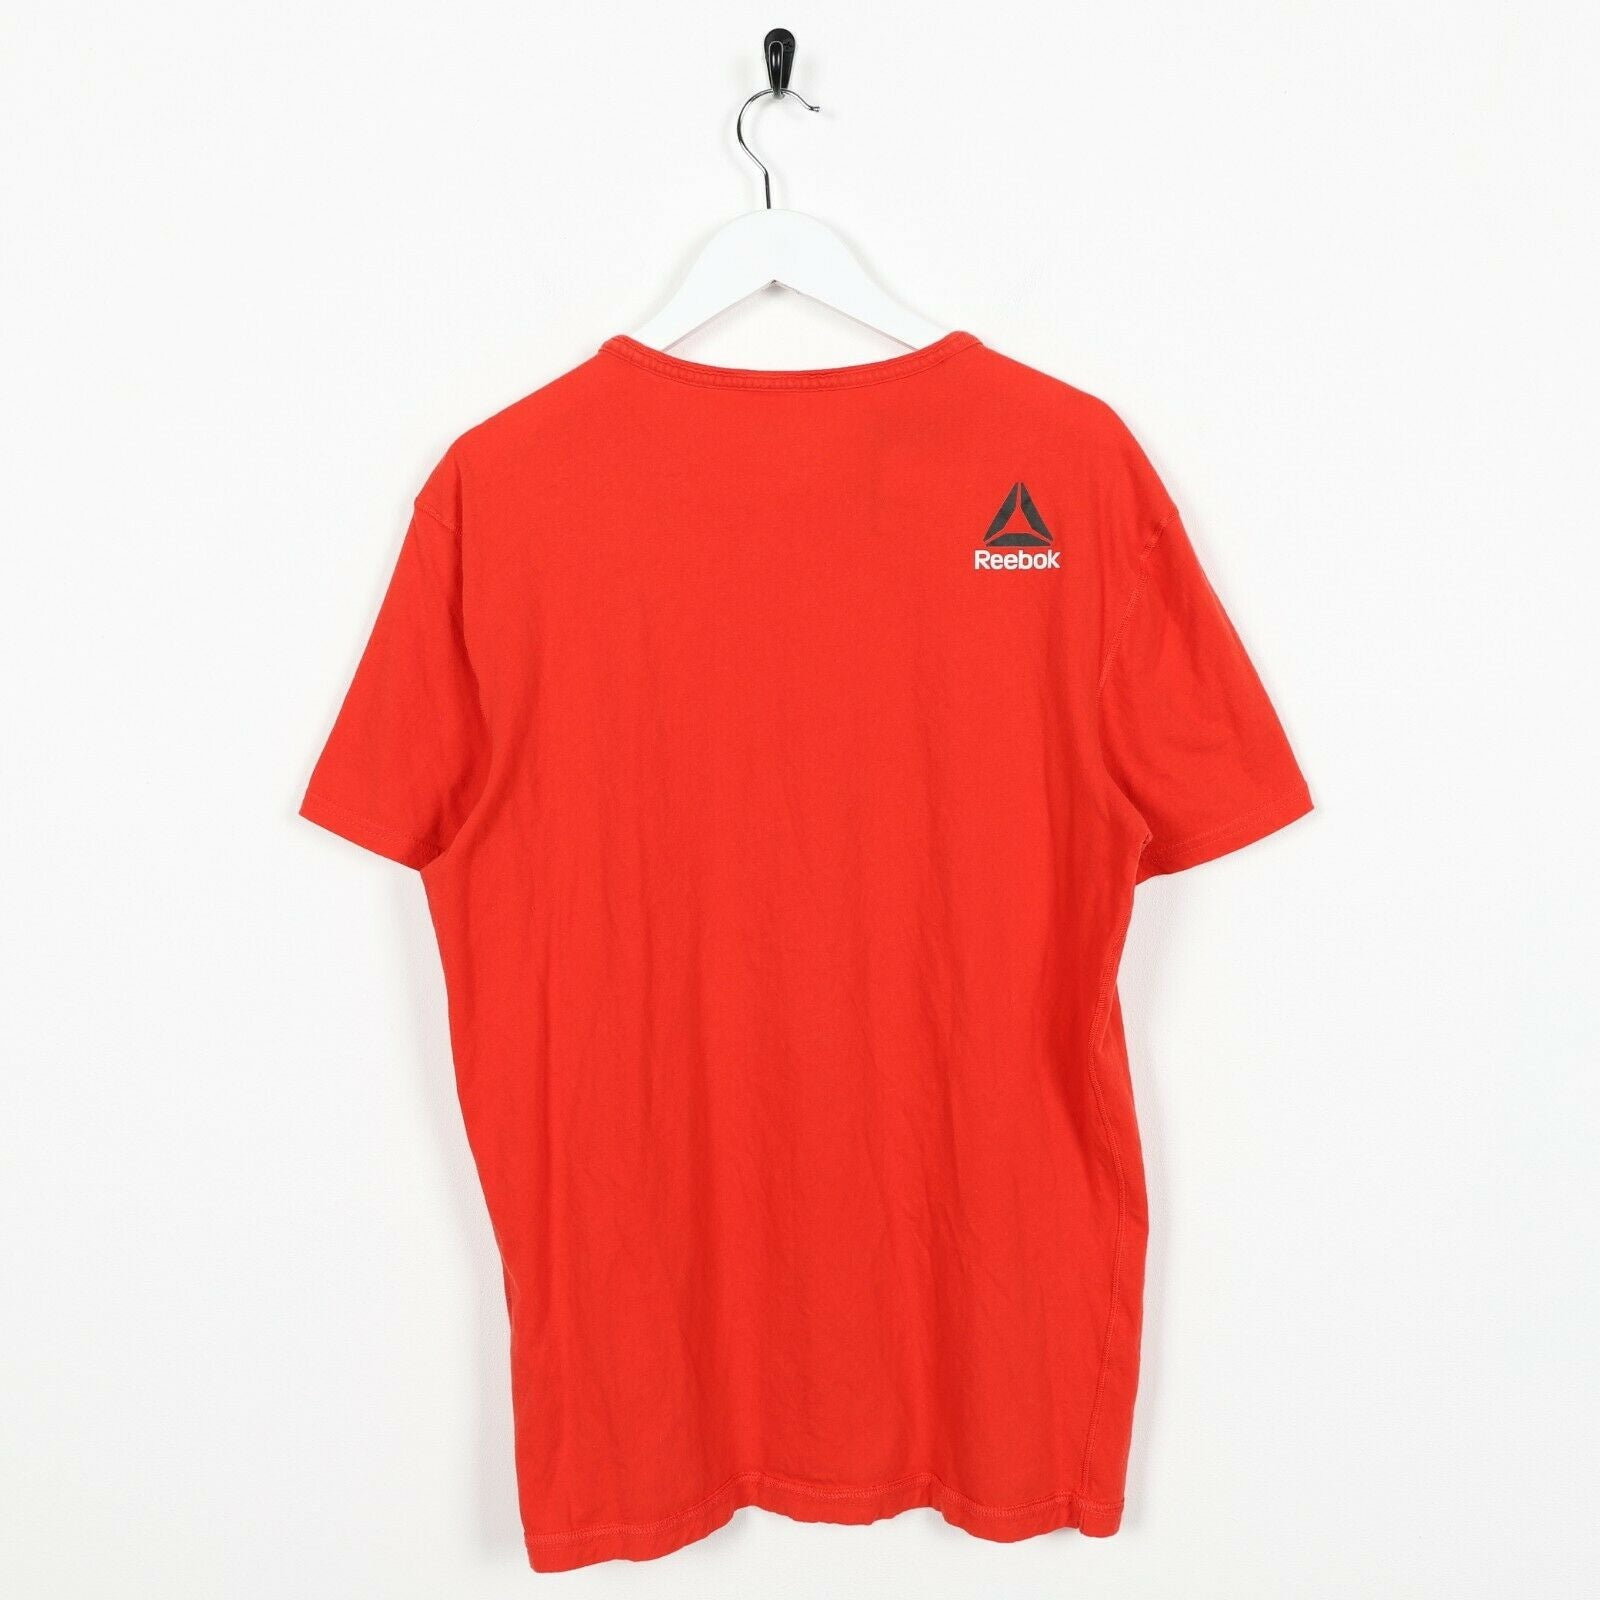 Vintage REEBOK Graphic T Shirt Tee Red Medium M